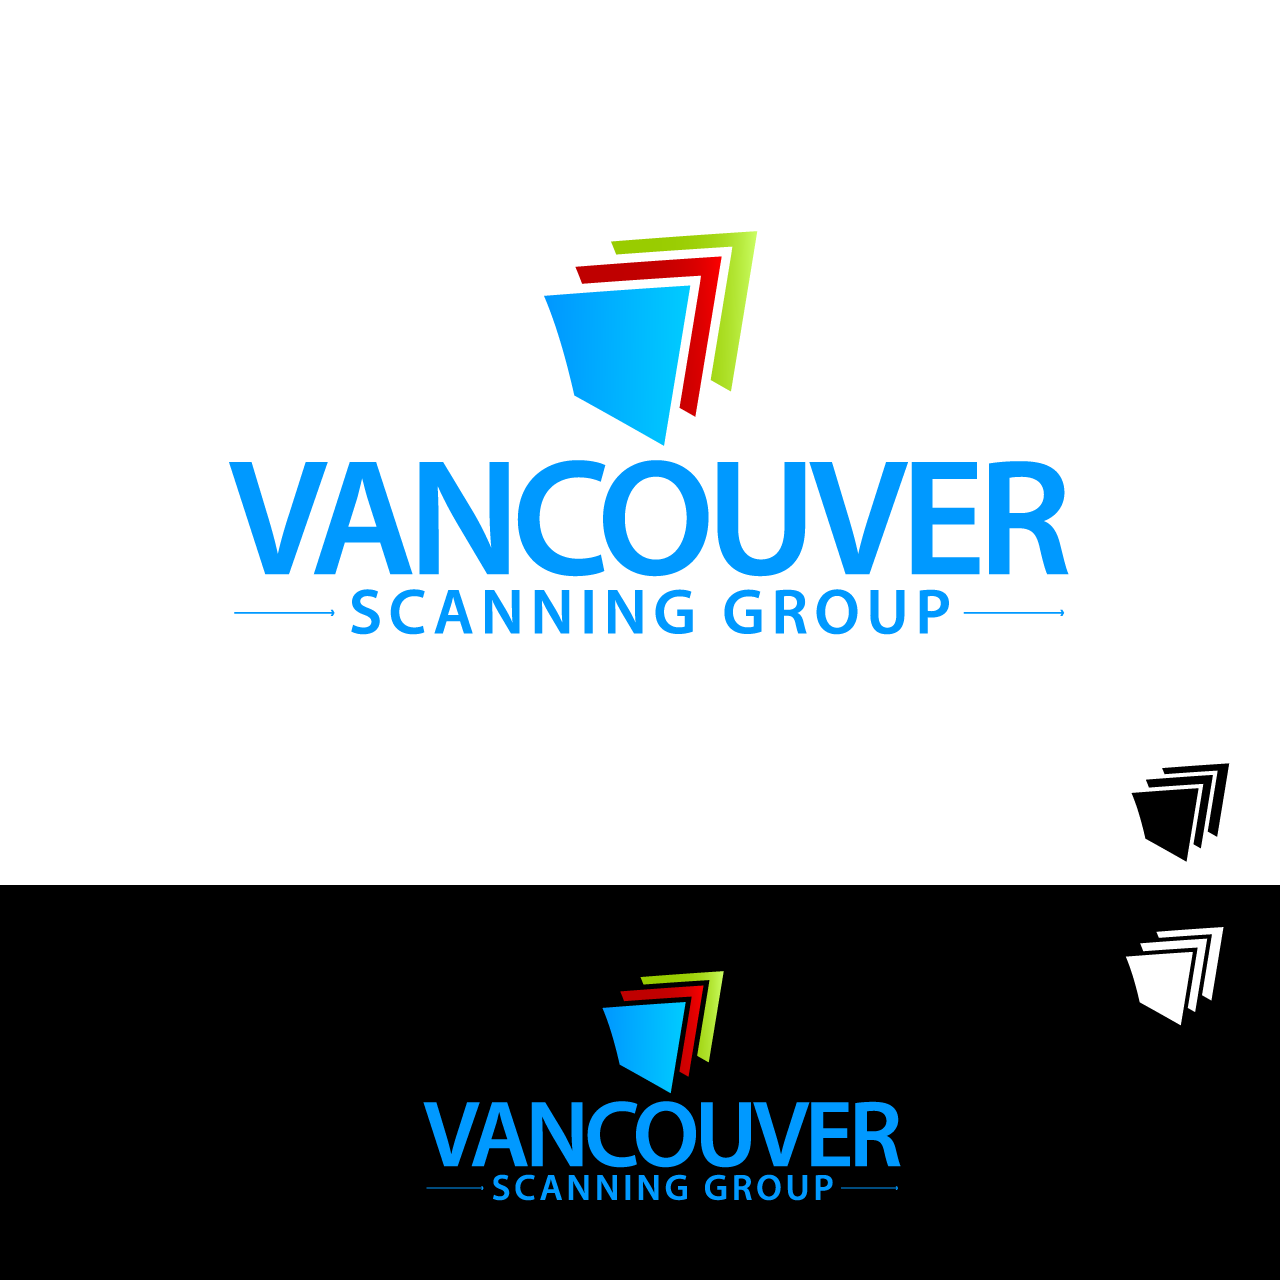 Logo Design by umxca - Entry No. 59 in the Logo Design Contest Vancouver Scanning Group.